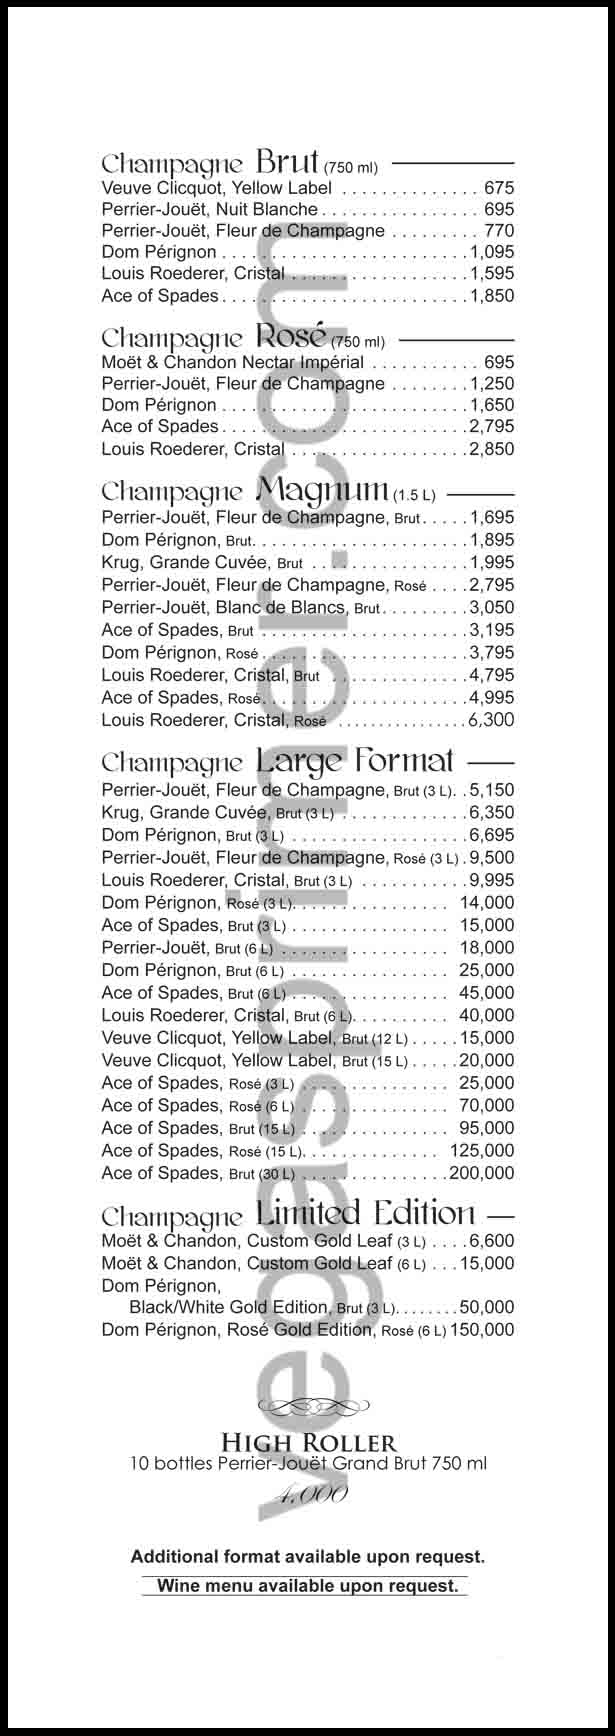 Champagne Options for XS Las Vegas